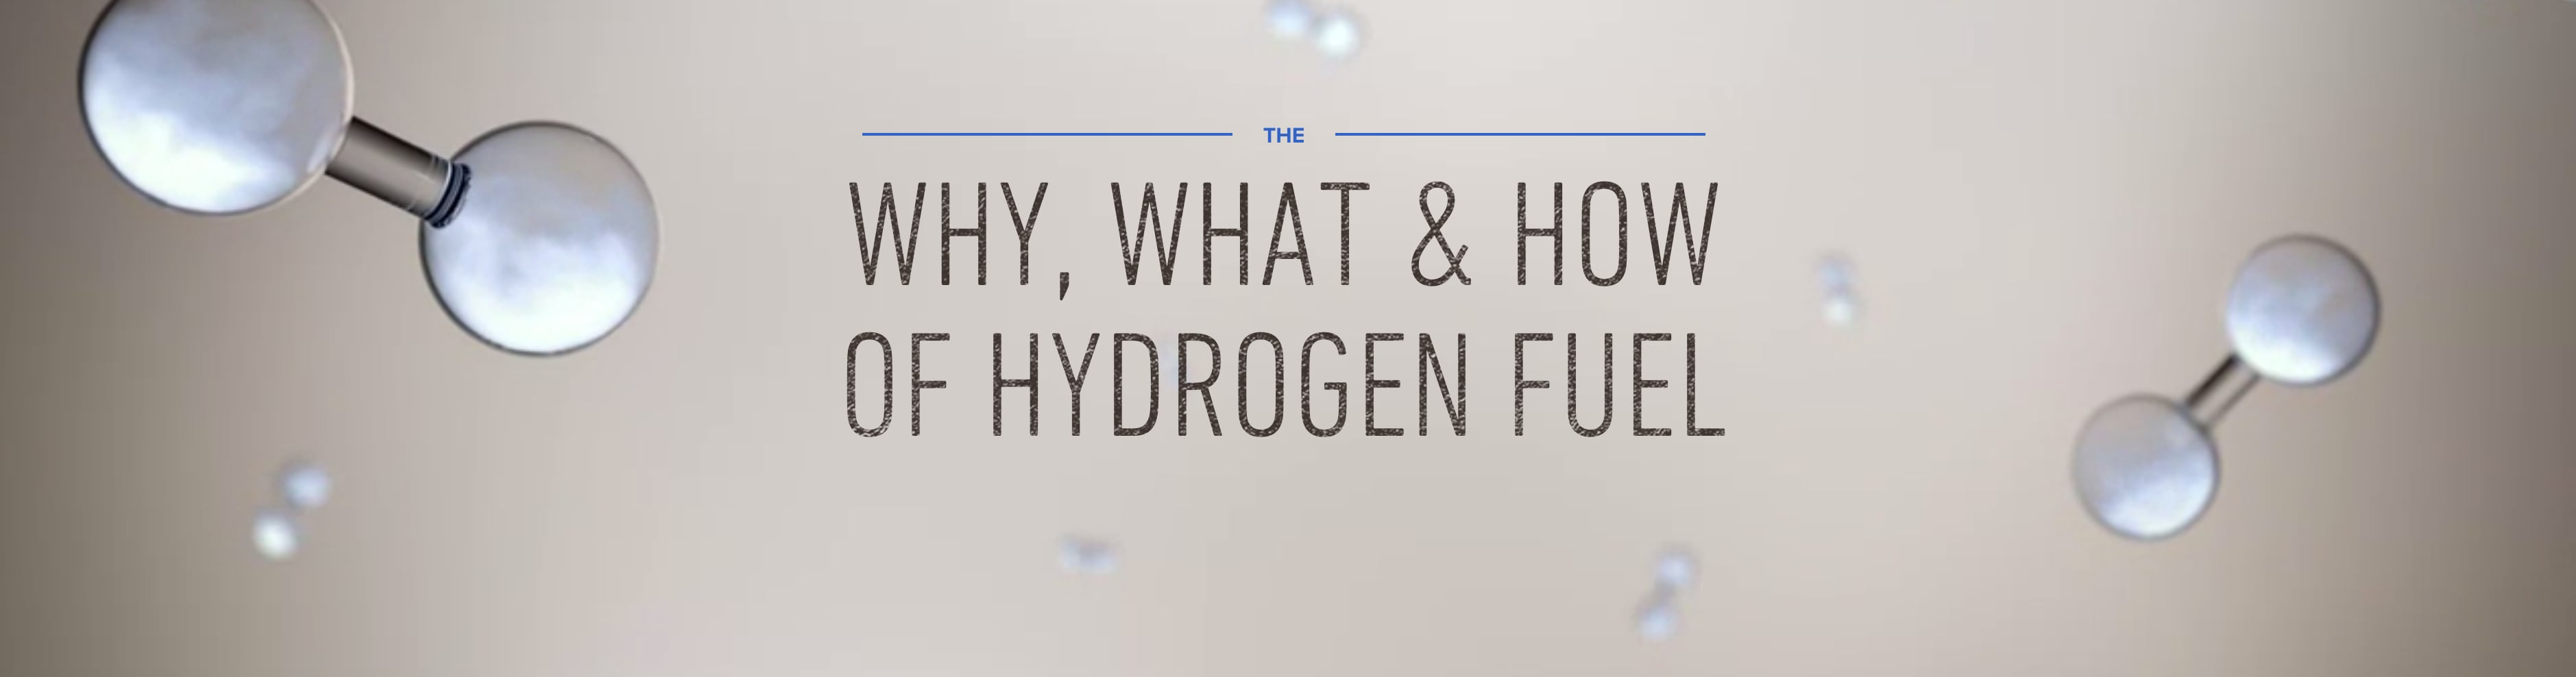 hydrogen fuel Spokane Washington